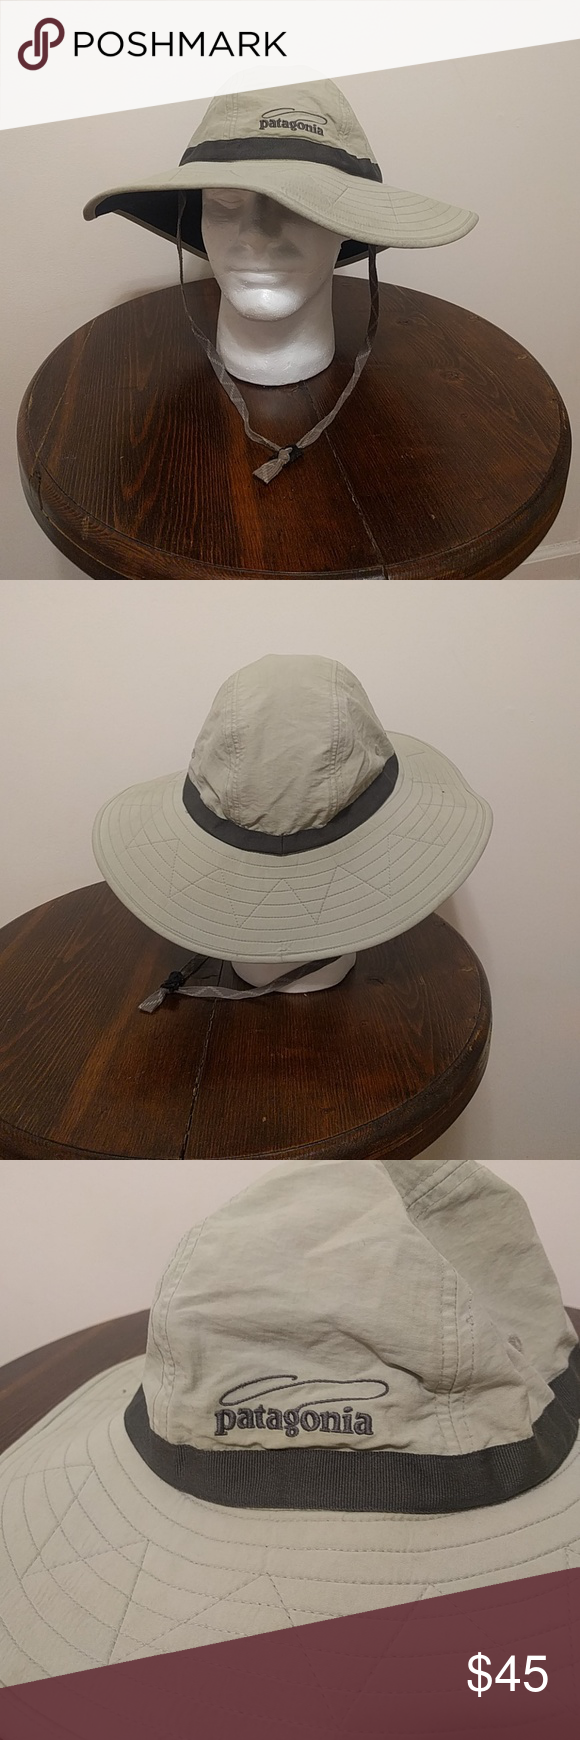 Patagonia fly fishing bucket hat Patagonia fly fishing bucket hat. Super  breathable. Tan with green-ish strap on the crown. Worn a handful of times. 08a37877caec